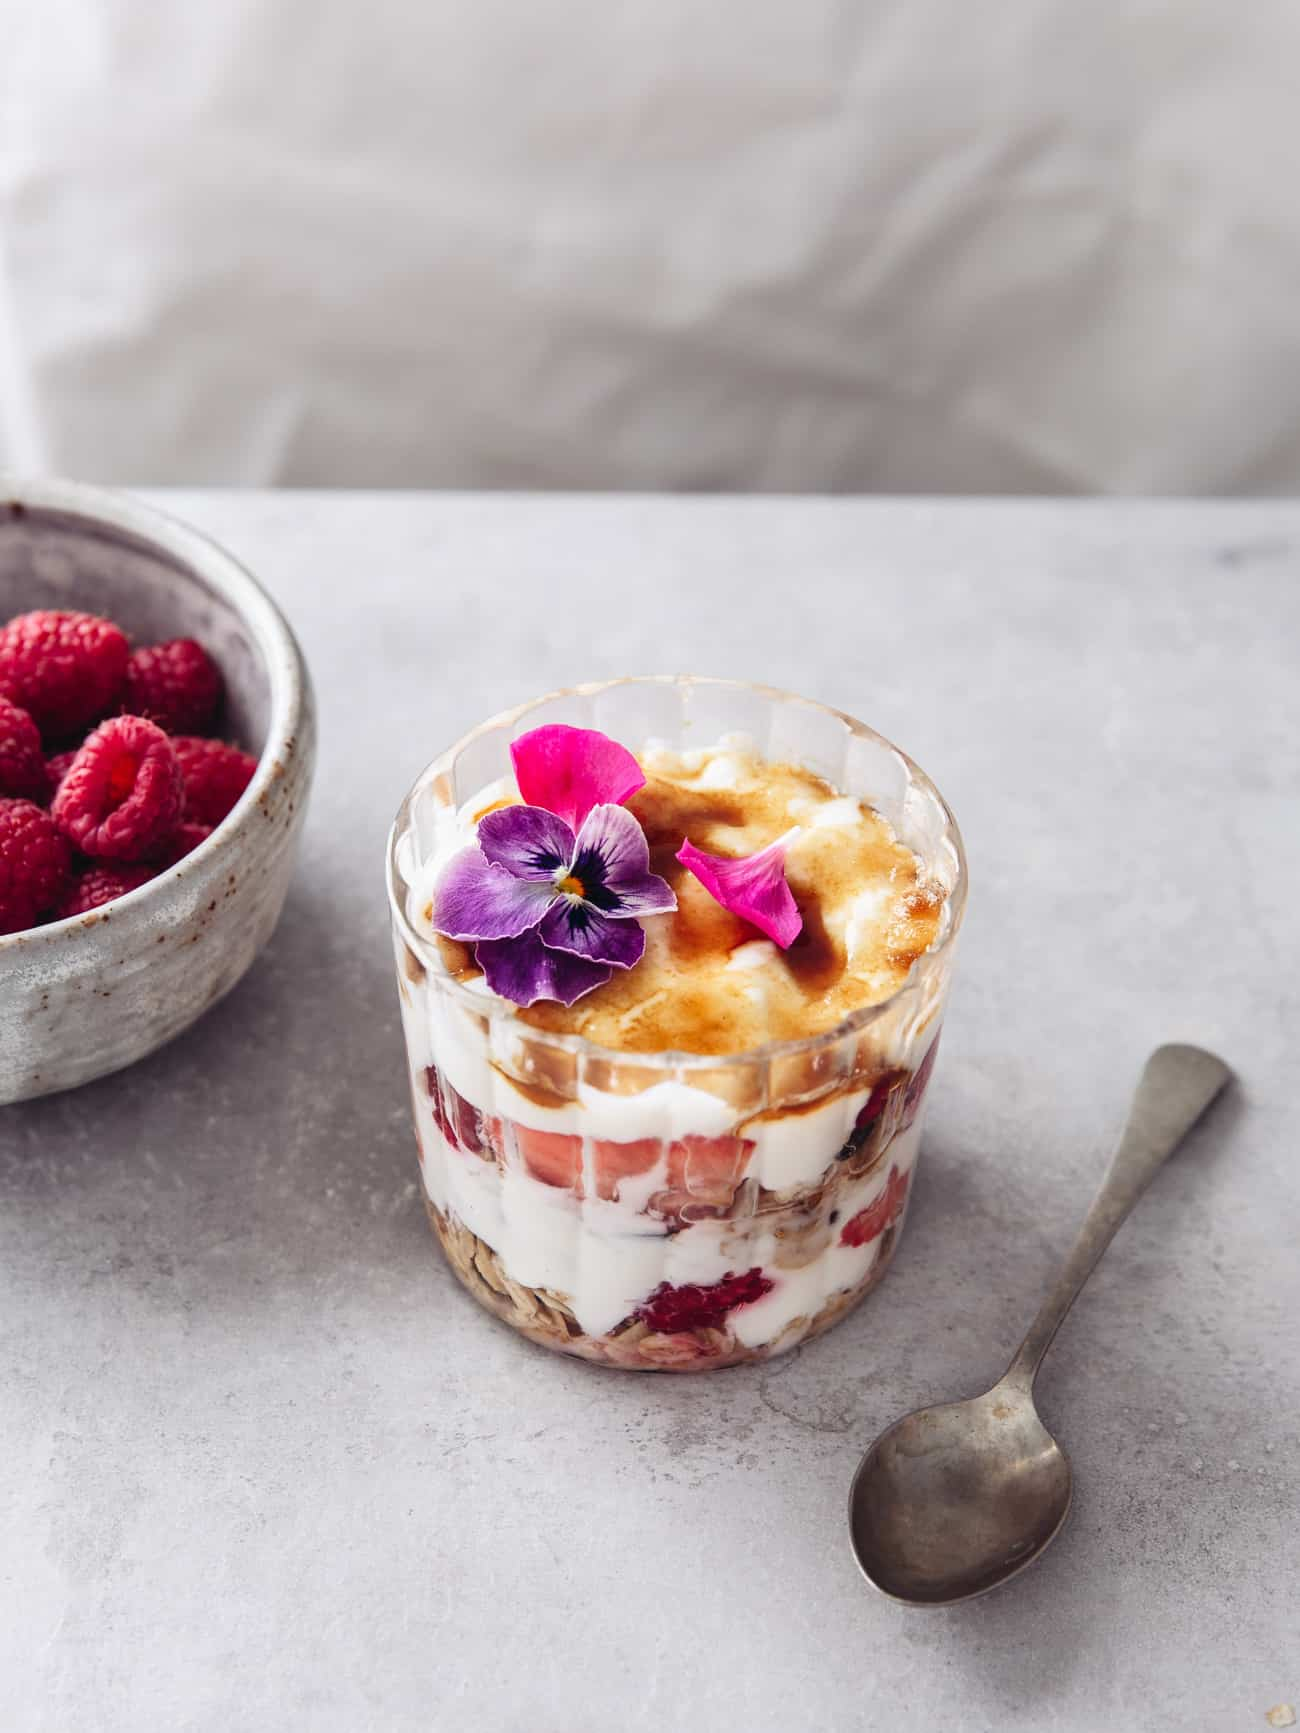 A glass with layers of yoghurt brulee, fruit and granola